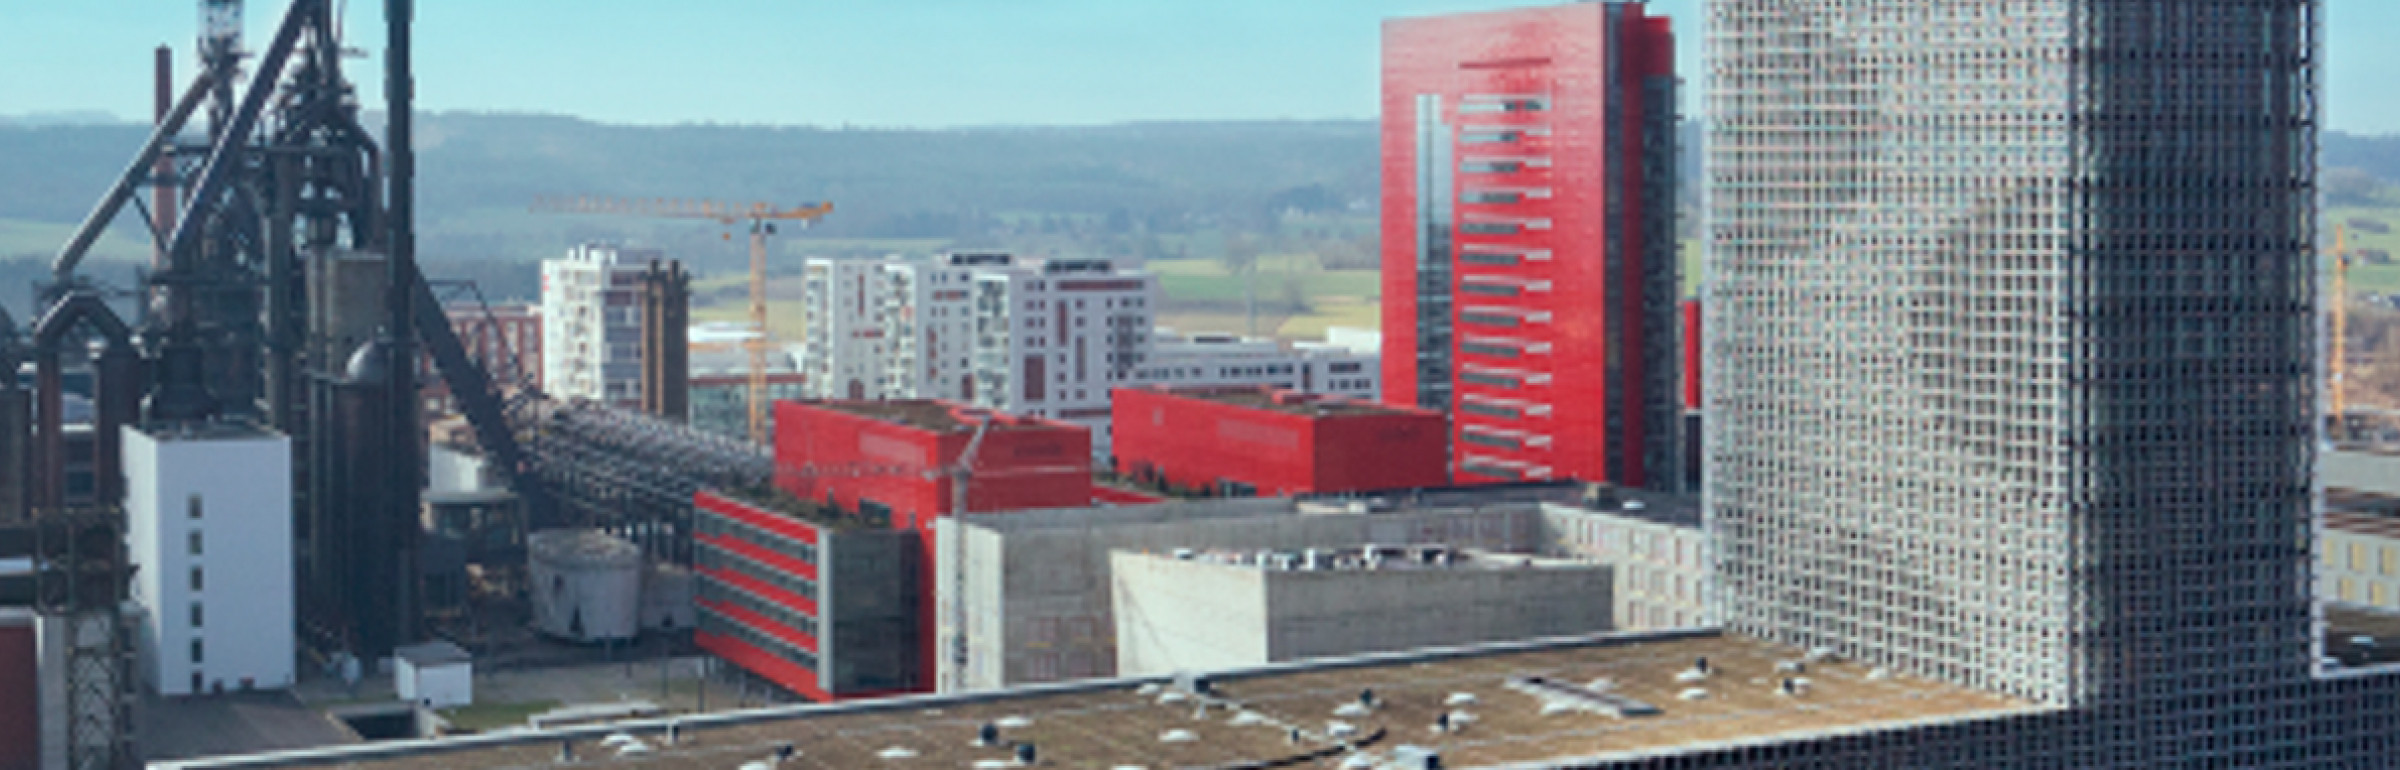 Banner INTERDISCIPLINARY CENTRE FOR SECURITY, RELIABILITY AND TRUST (SNT)